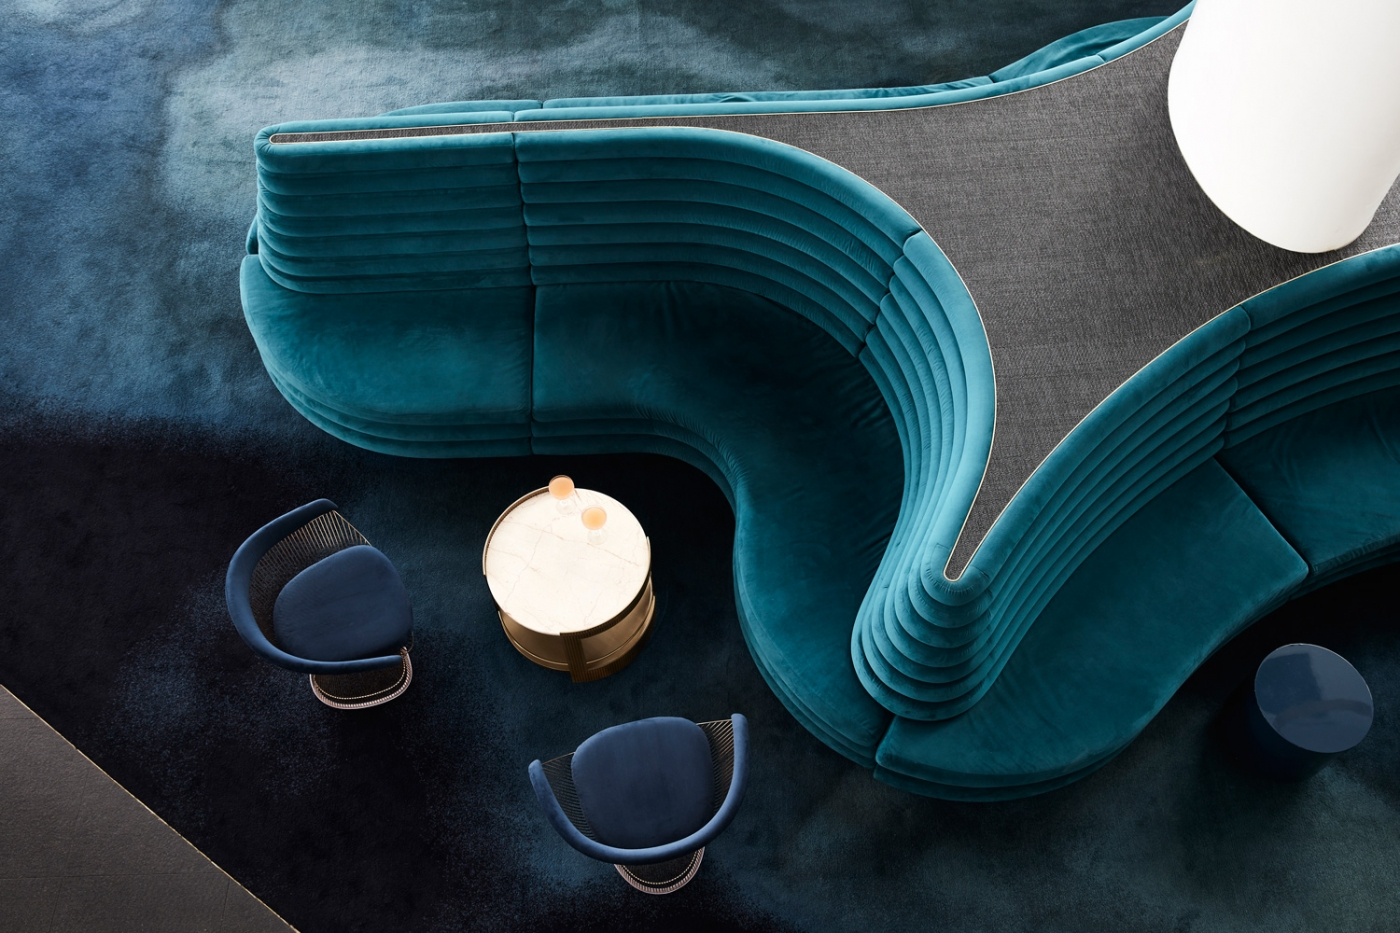 mim design A Blue and Gold Aesthetic: The New Rooftop Restaurant by Mim Design feature 1400x933